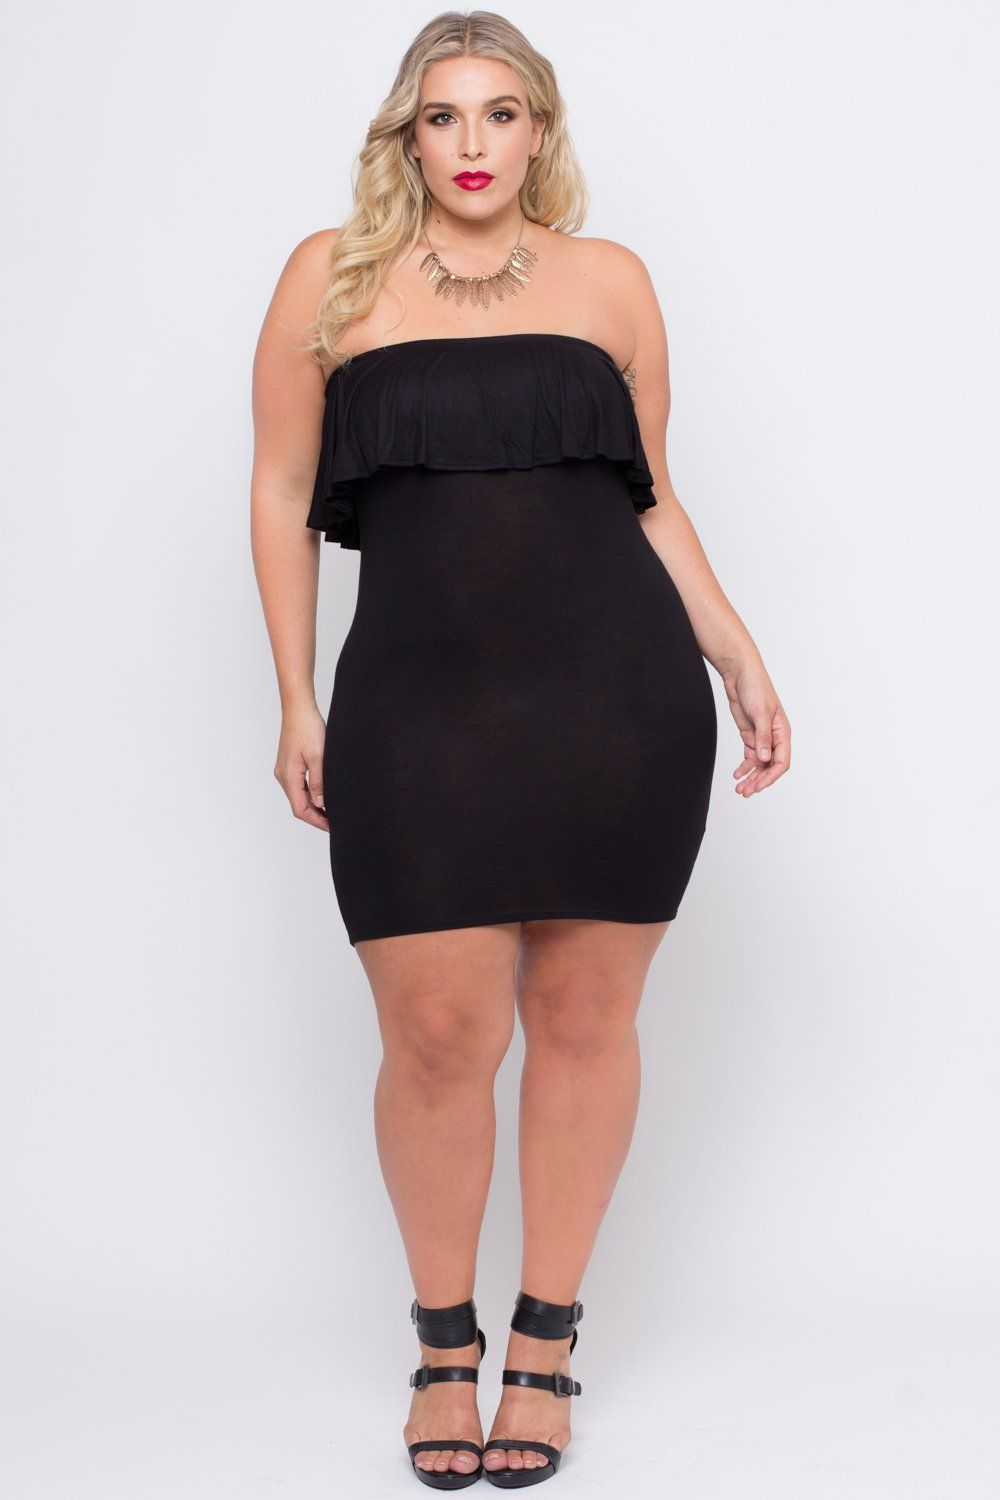 Plus Size Ruffle Frill Tube Dress - Black | Stephanie Viada ...